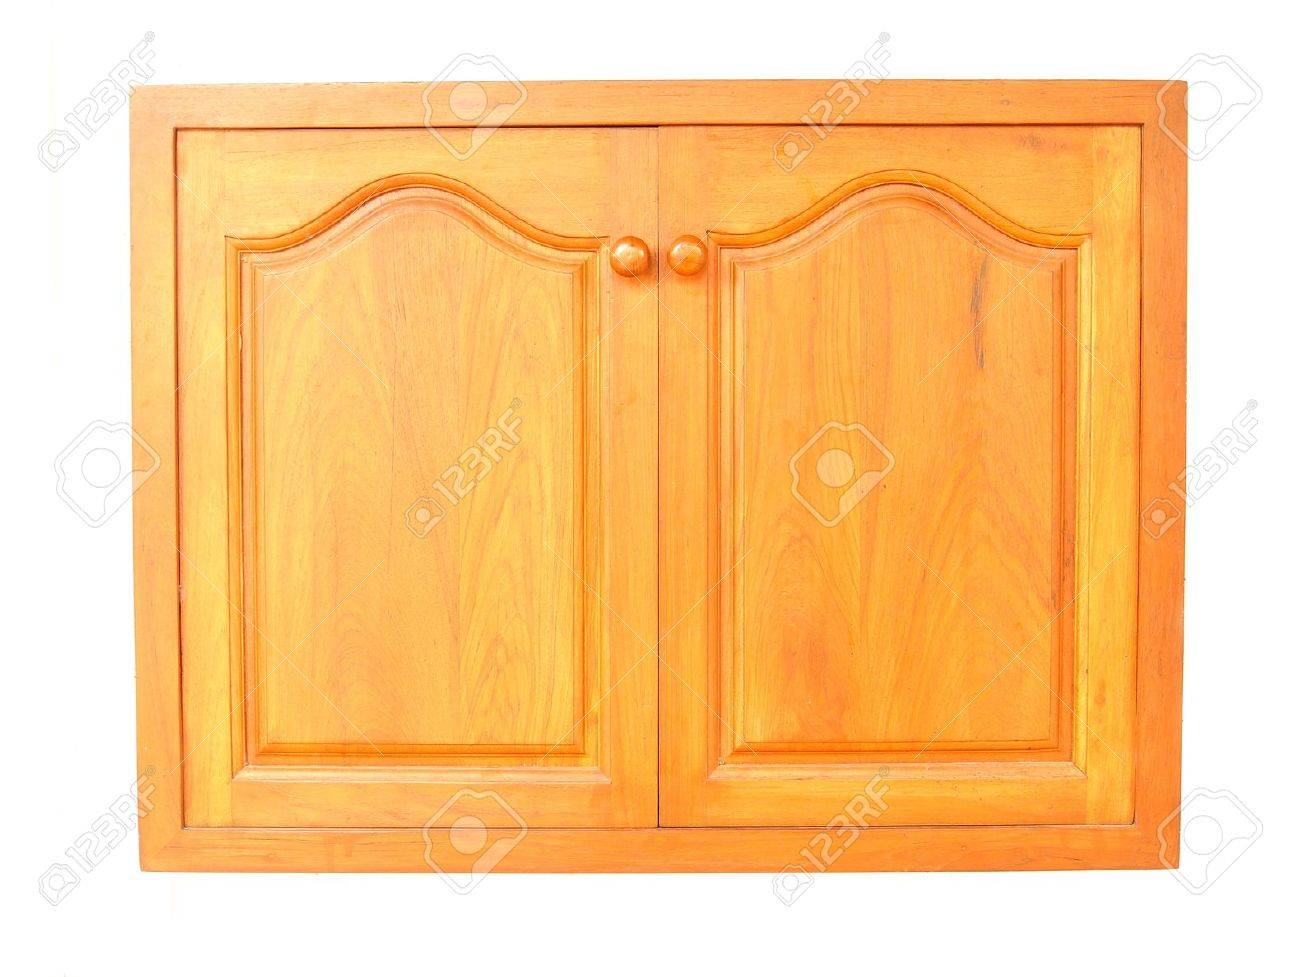 Wooden Cabinet Doors Isolated On White Background Stock Photo ...